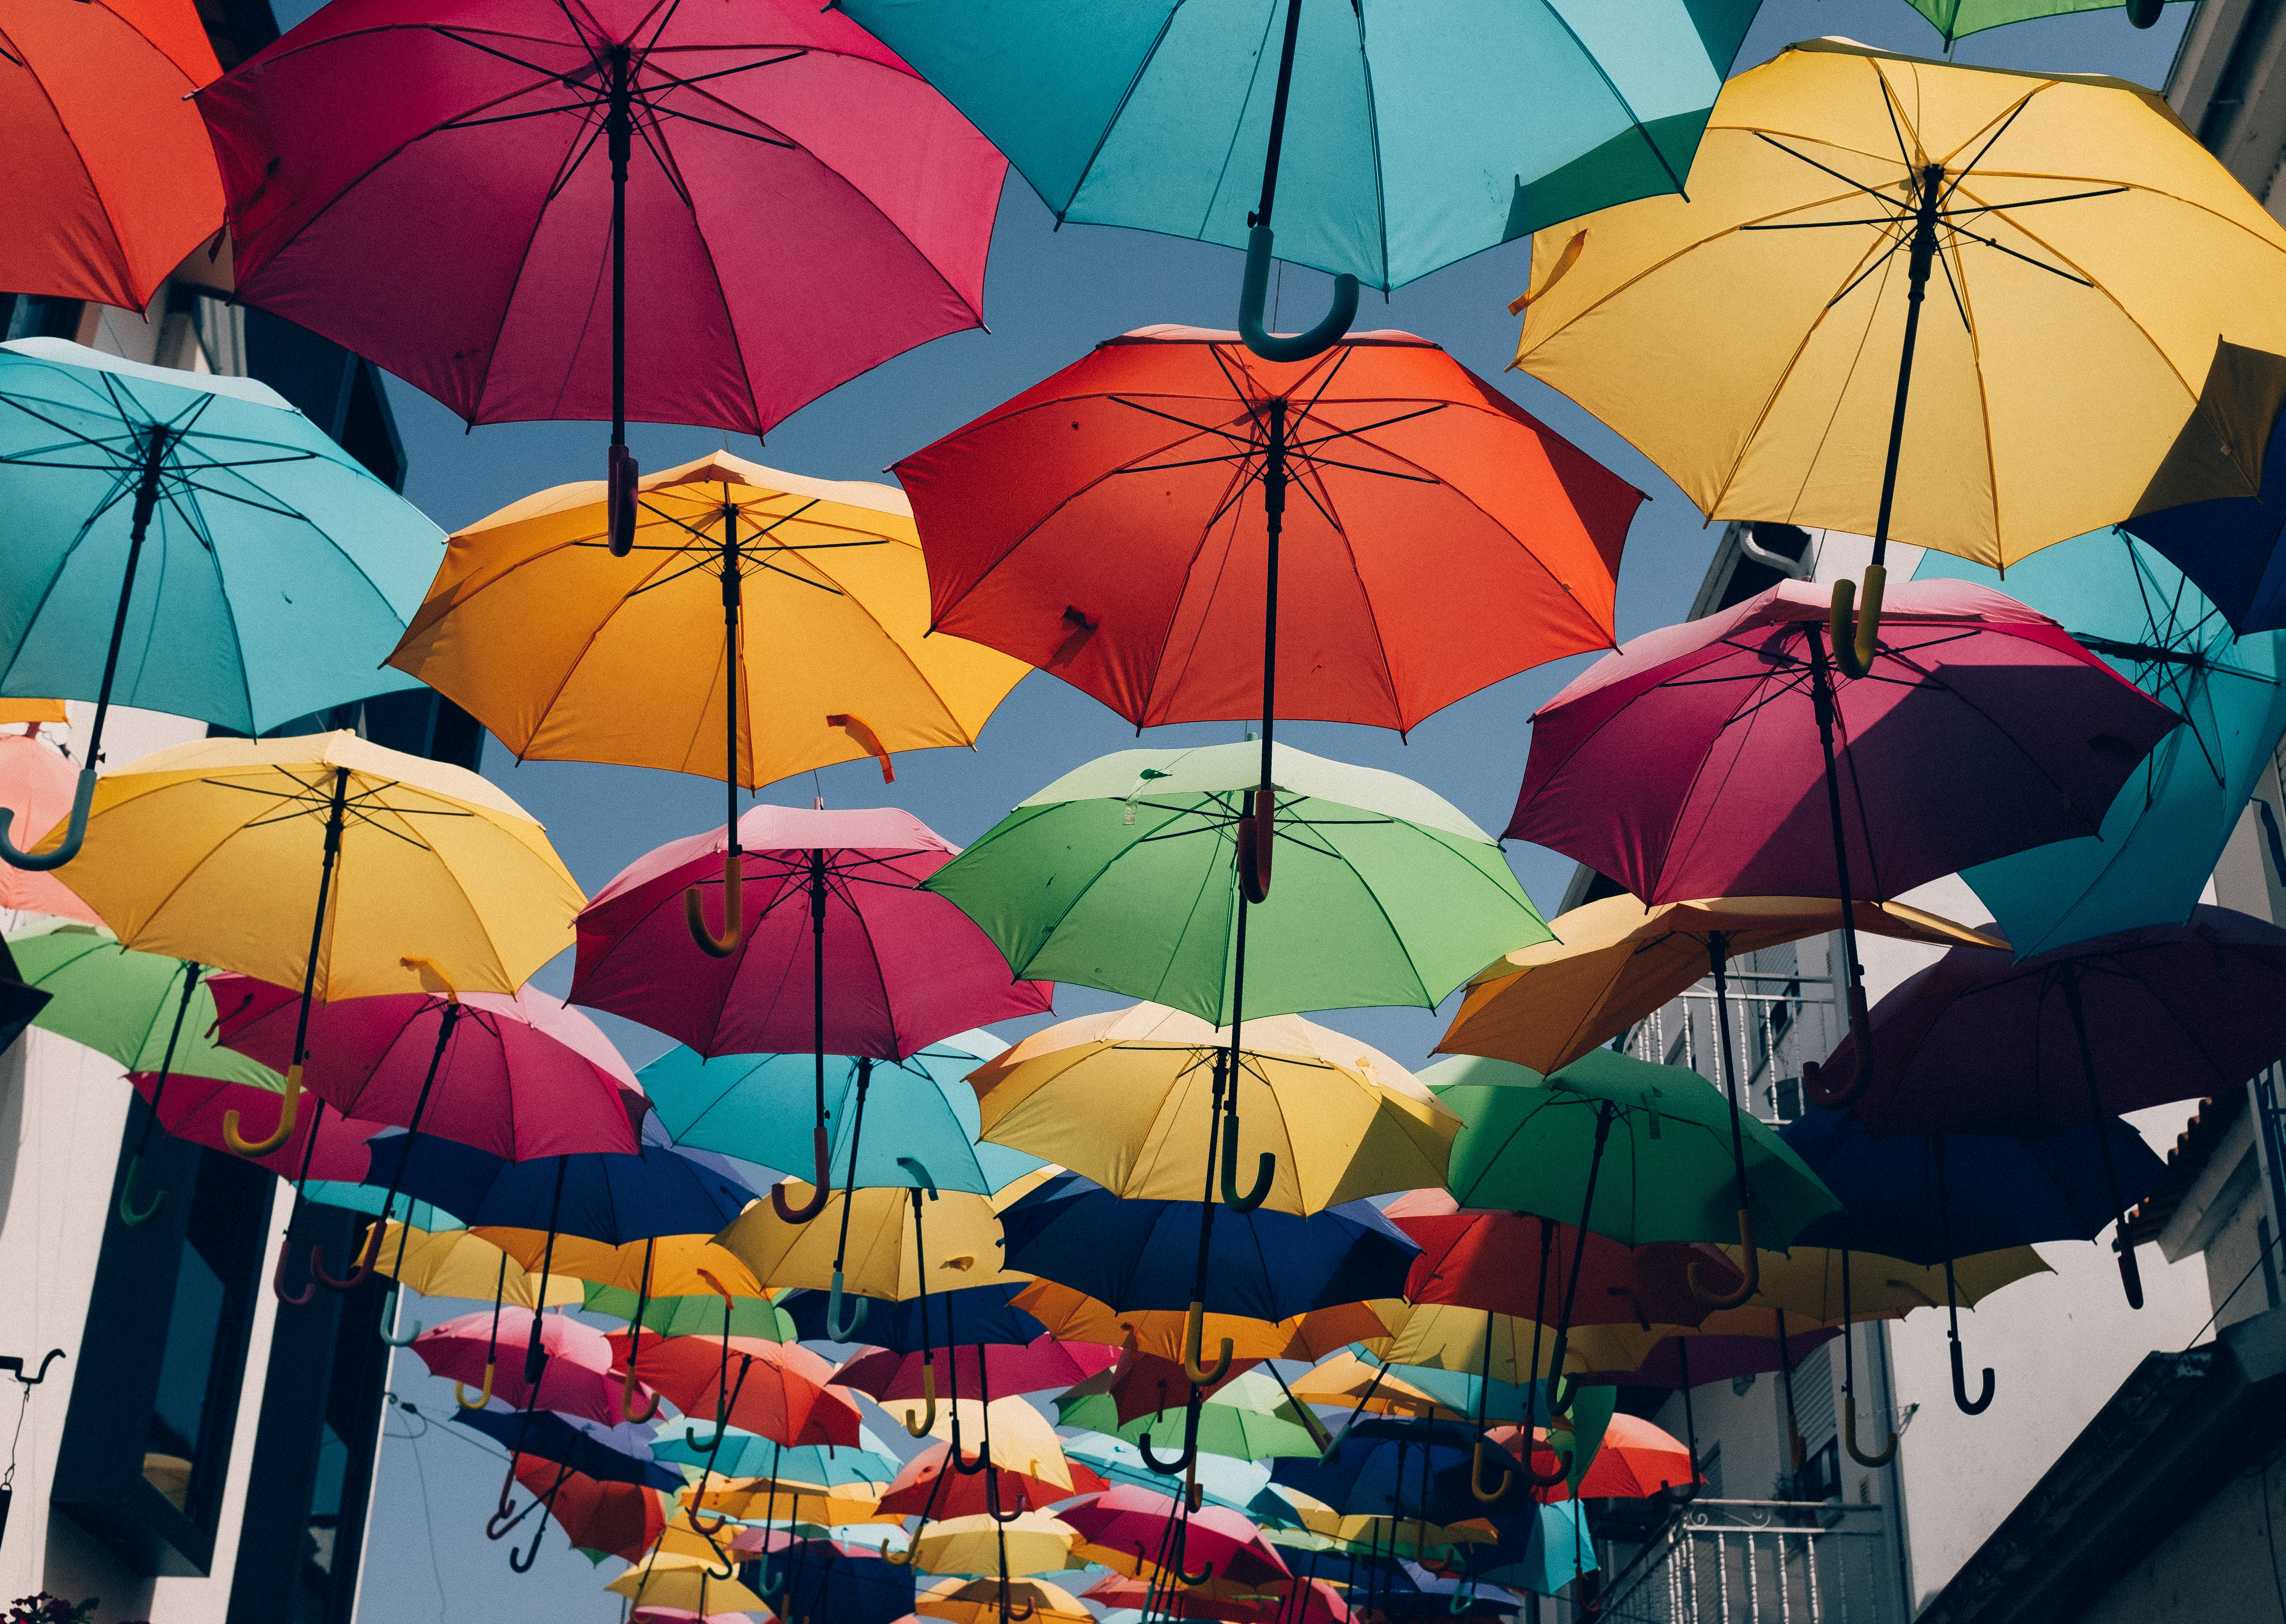 assorted umbrella lot during daytime